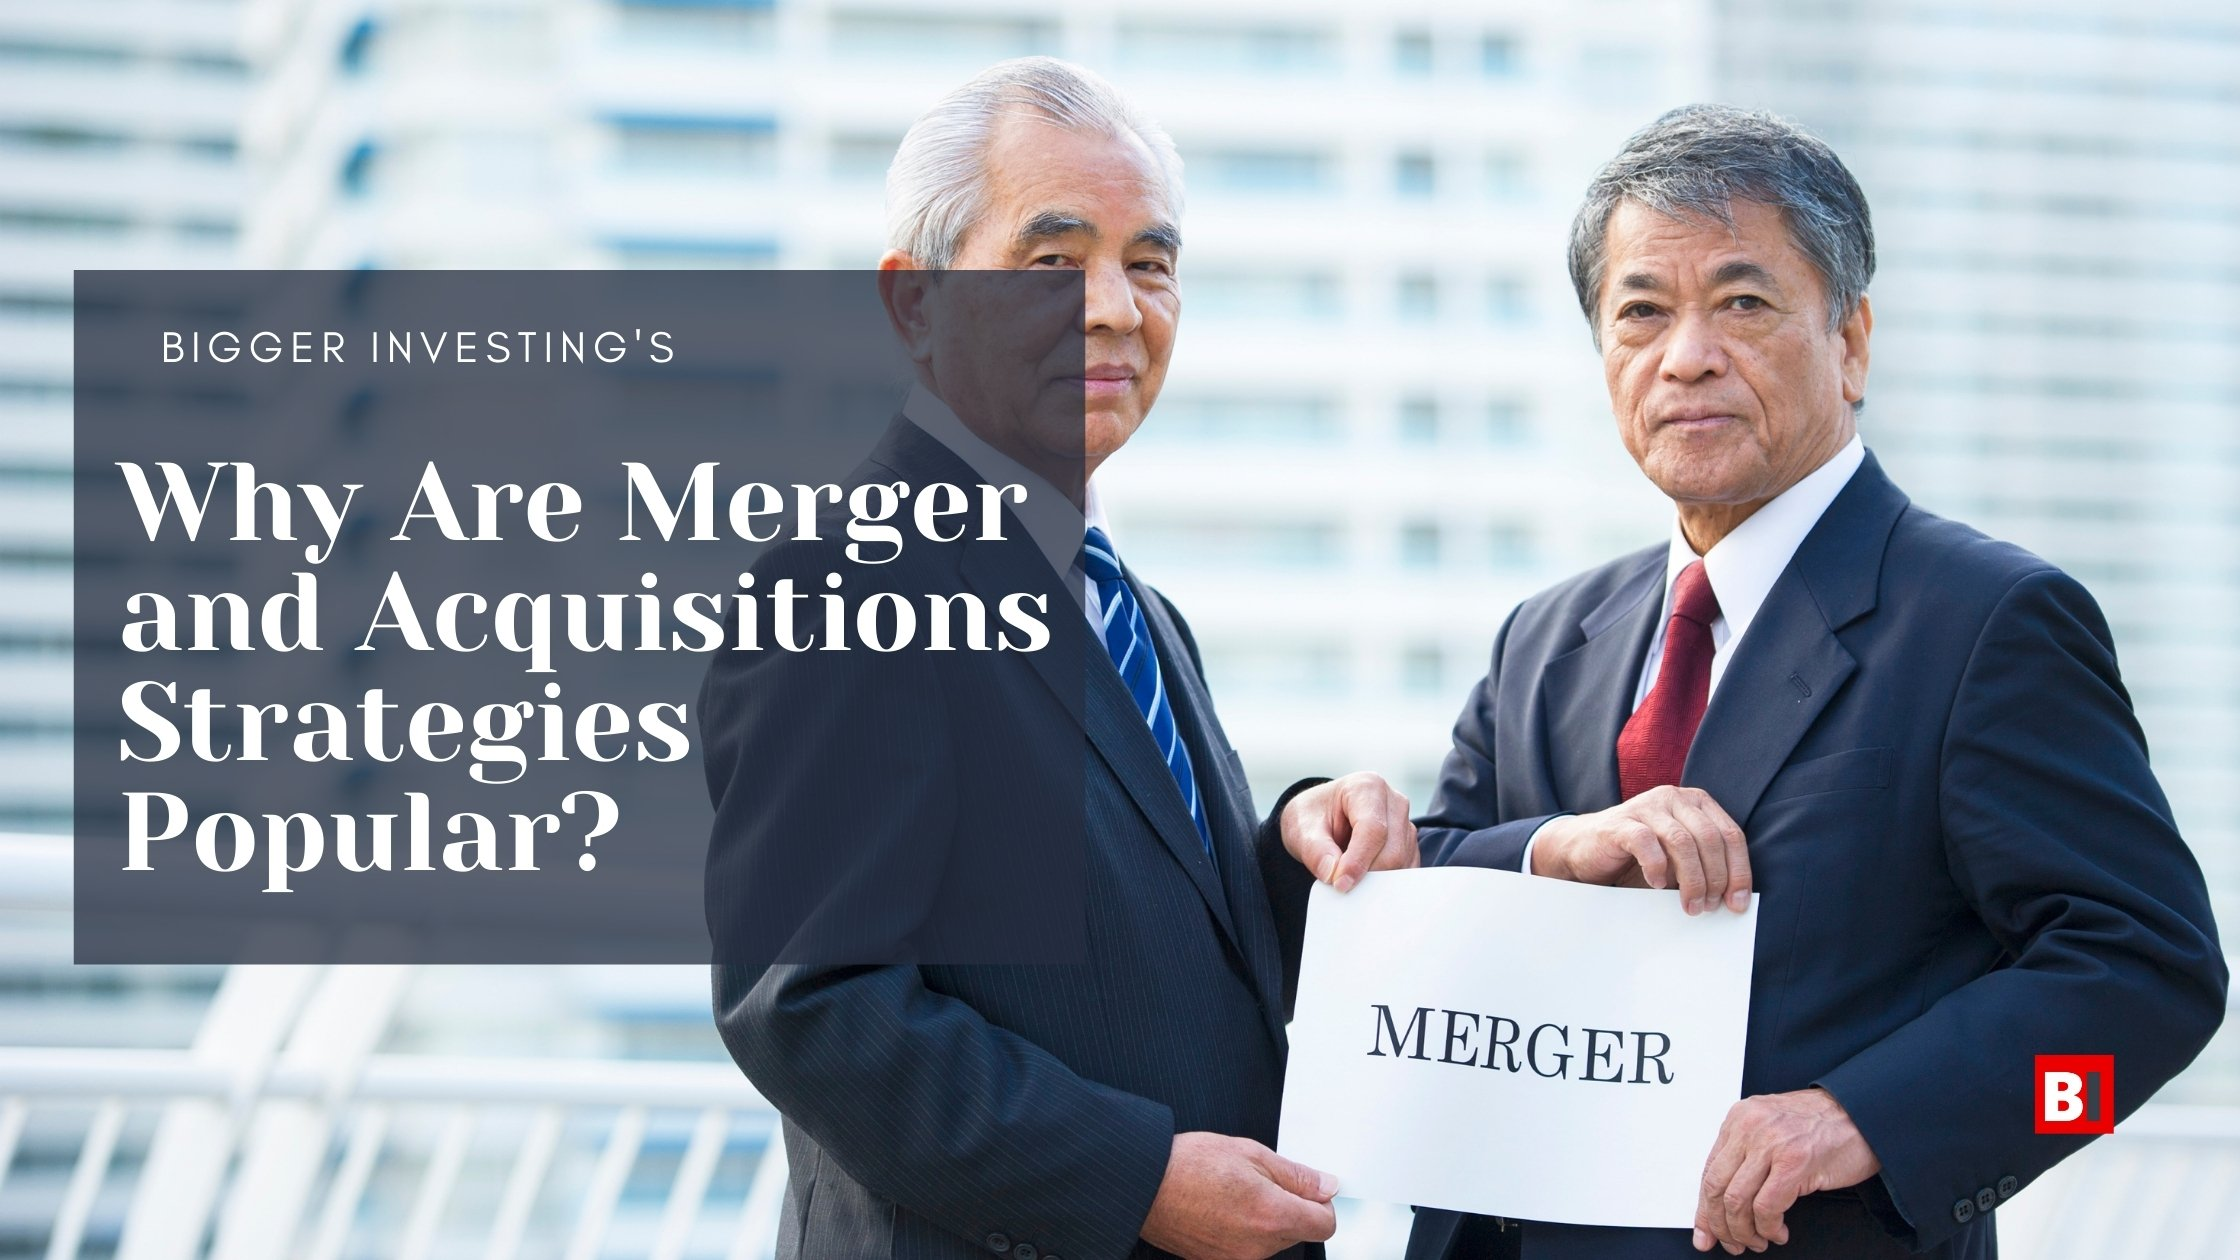 Why Are Merger and Acquisitions Strategies Popular?